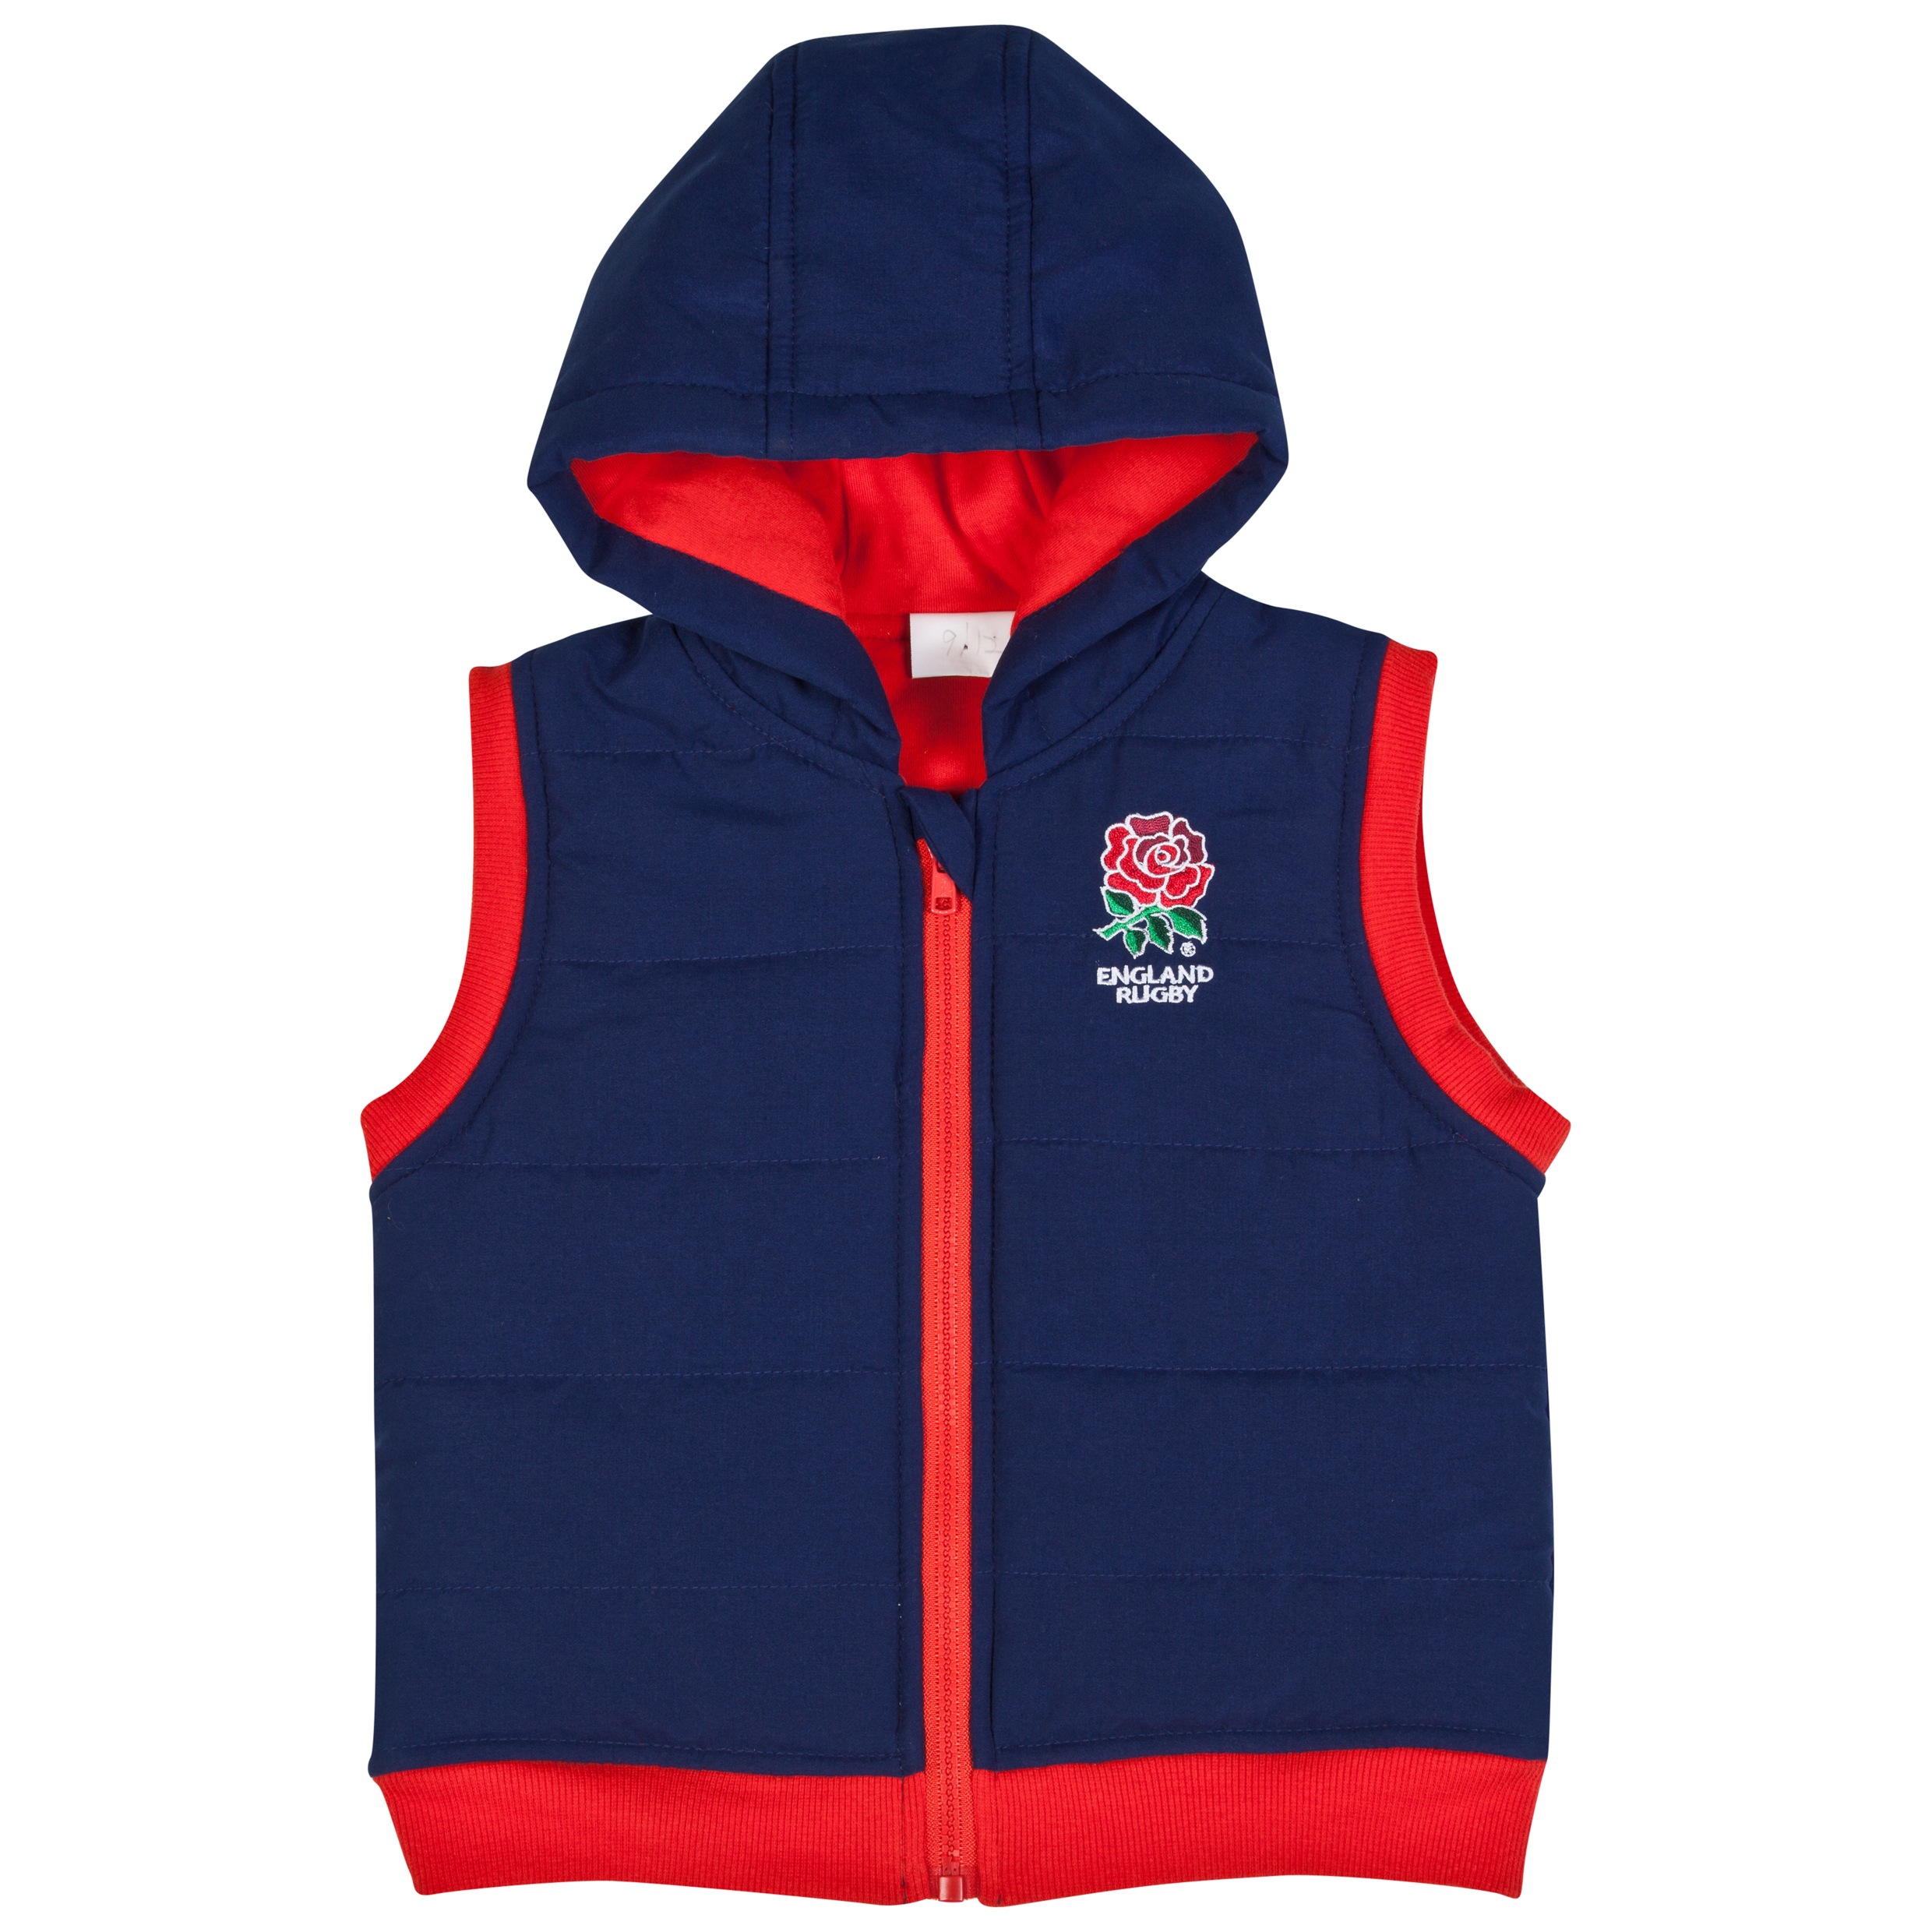 England Rugby Gilet - Infants Navy